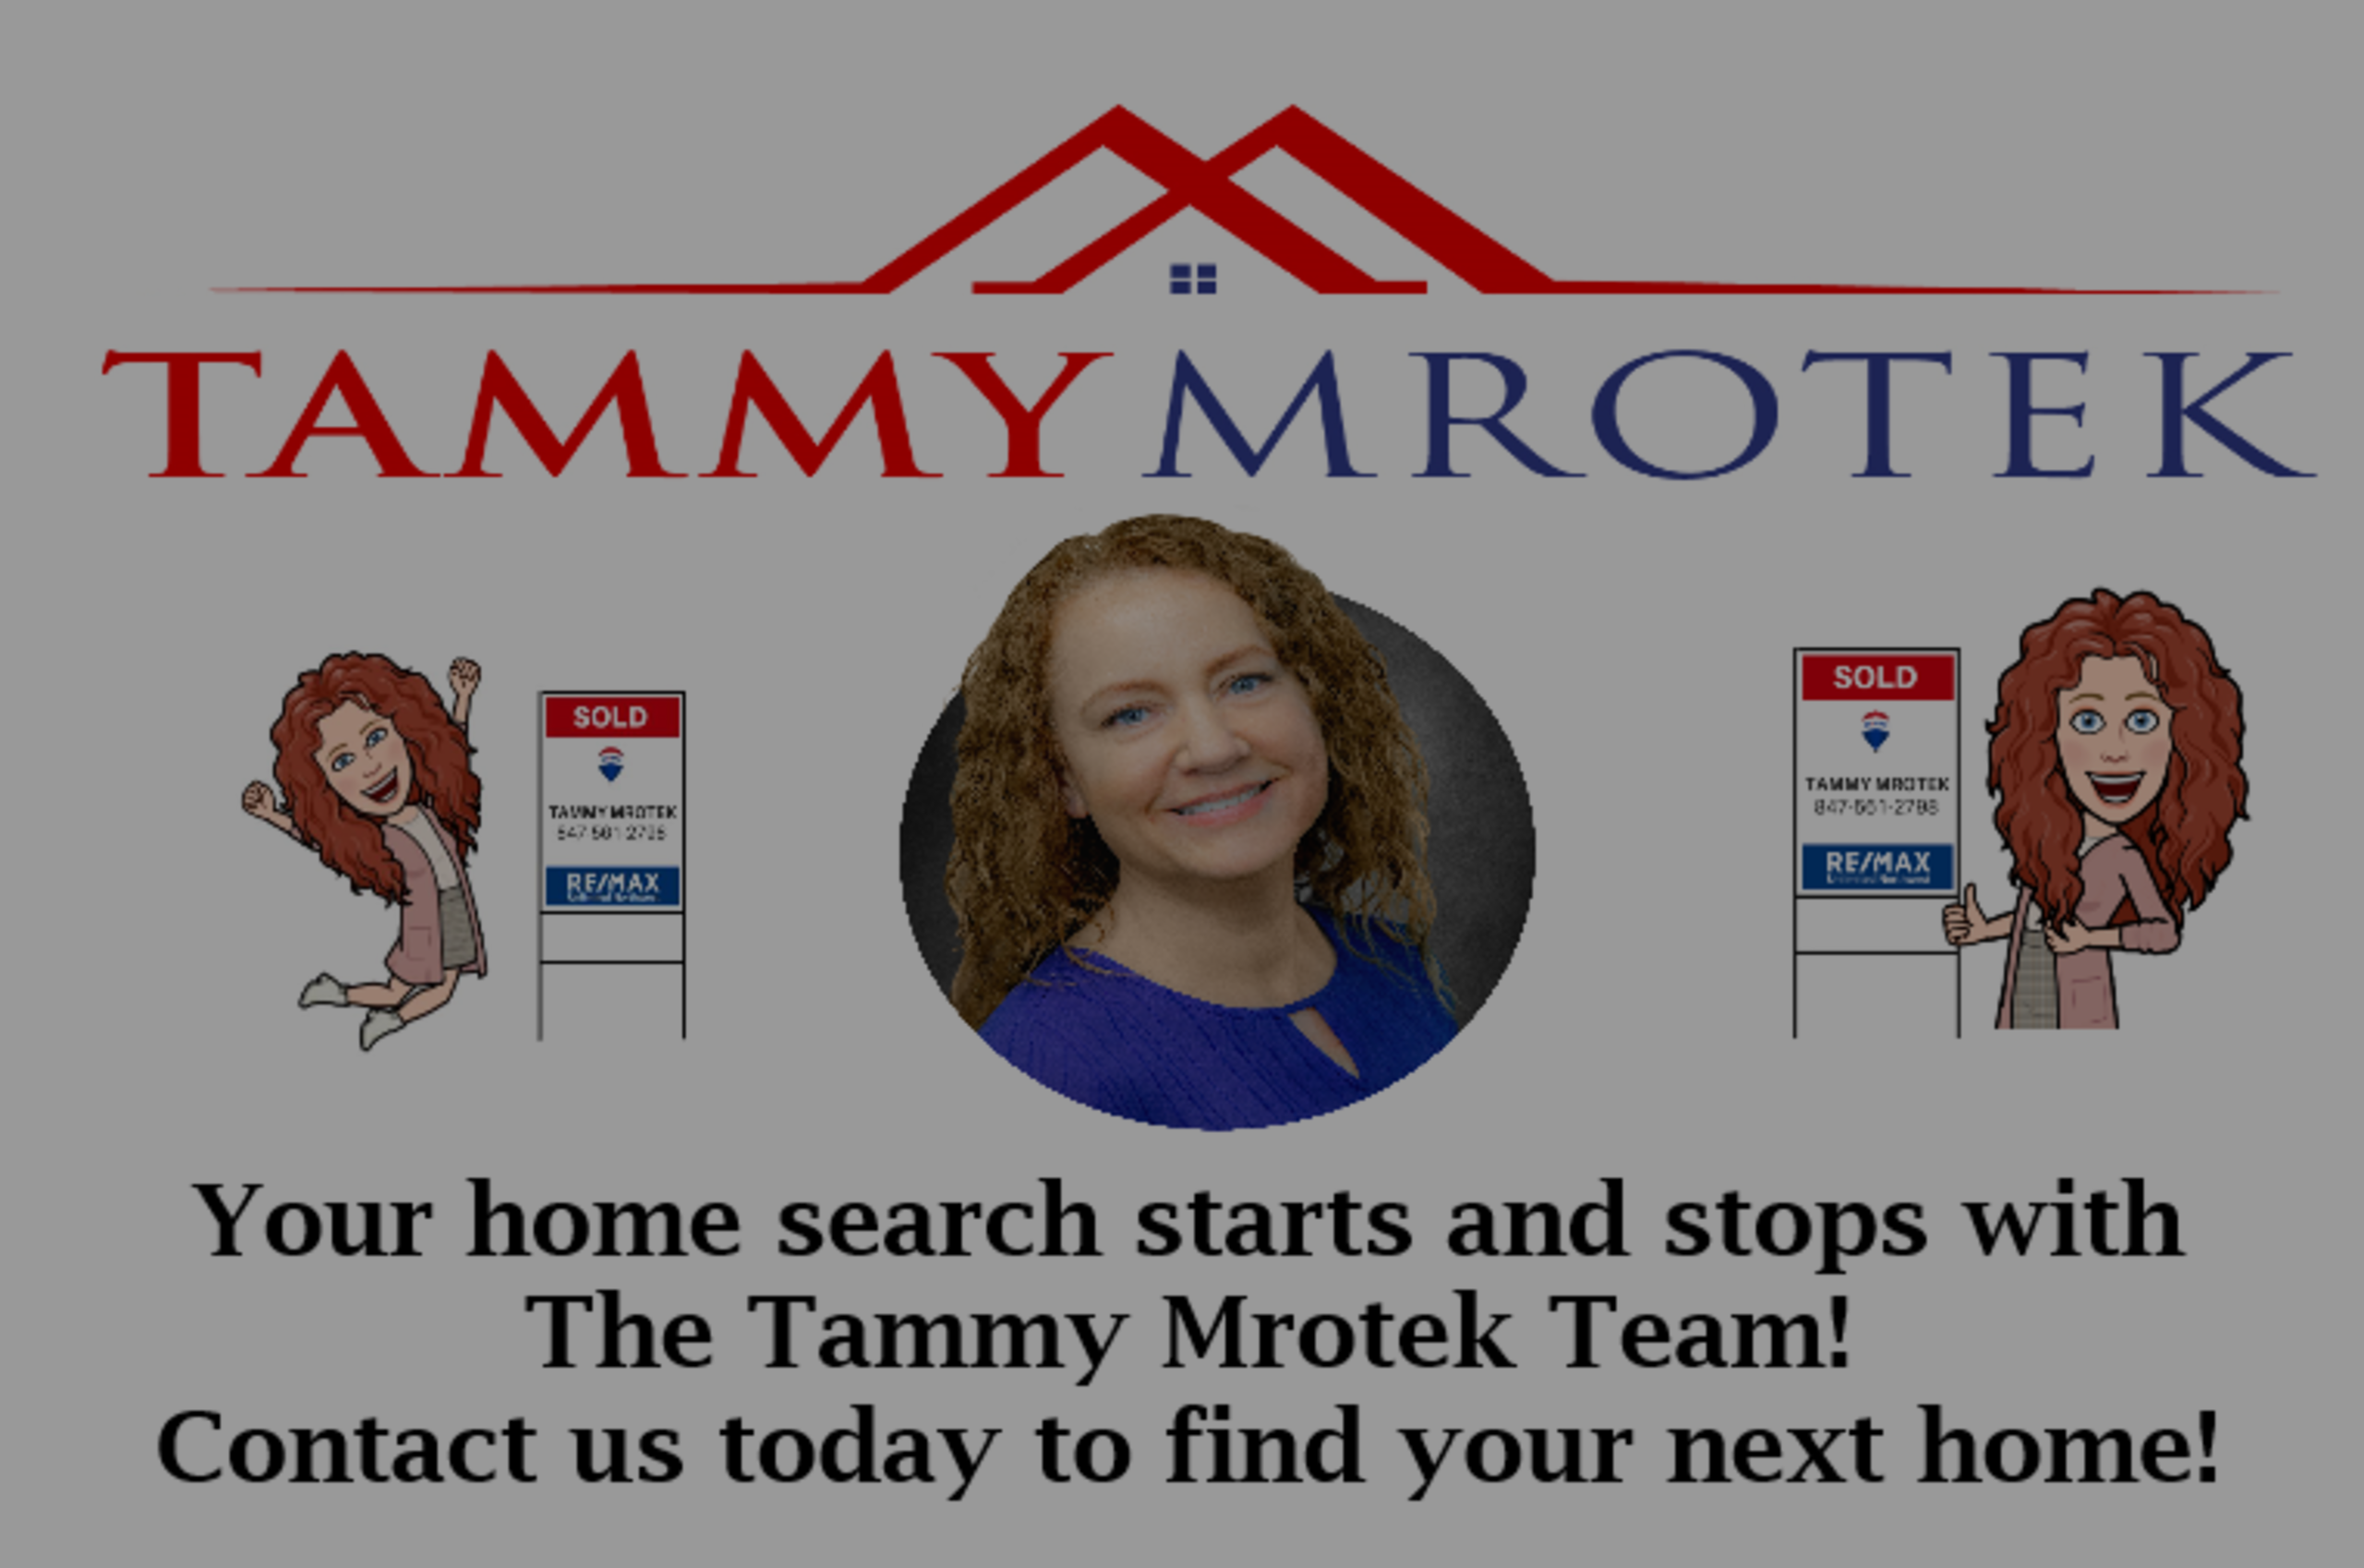 Your Home Search Starts and Stops With The Tammy Mrotek Team!